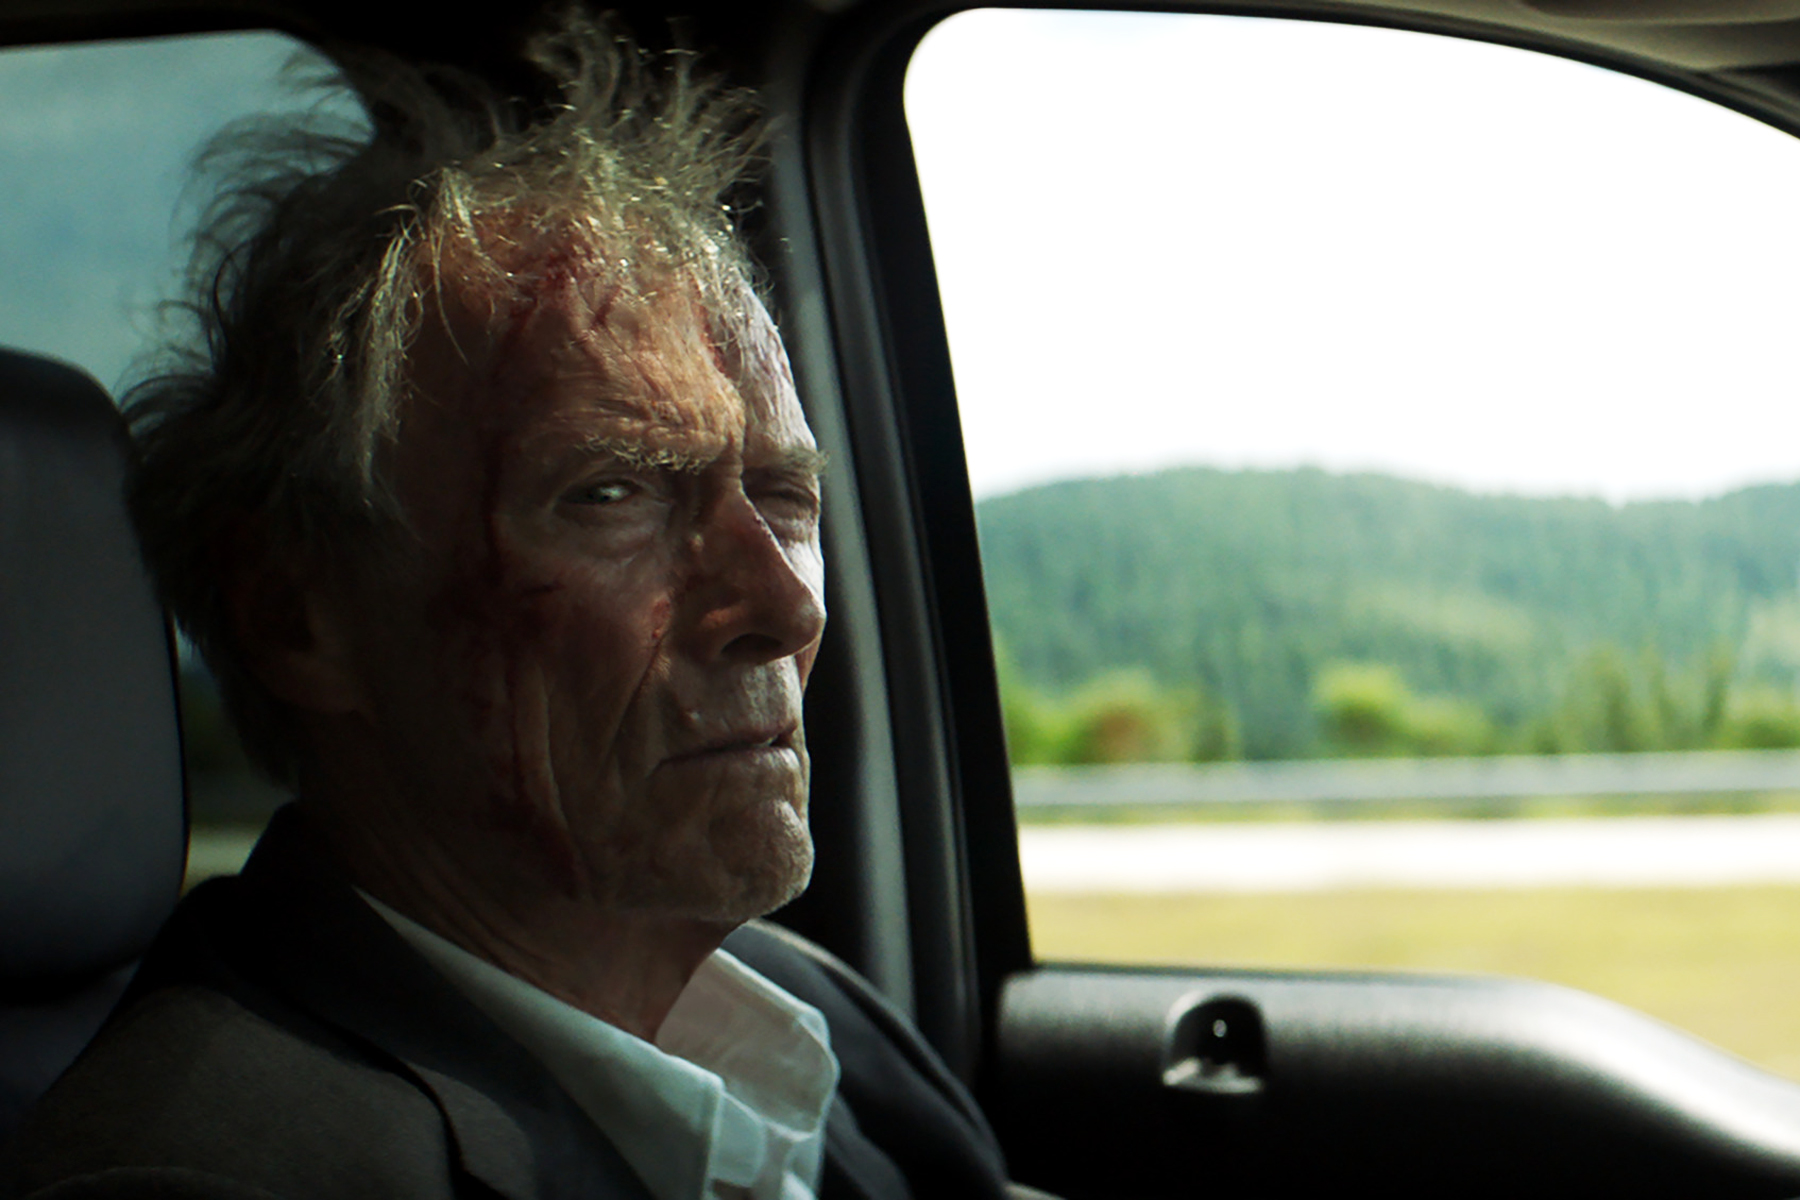 'The Mule' Review: Clint Eastwood's Latest Is No 'Dirty Harry: The Emeritus Years'